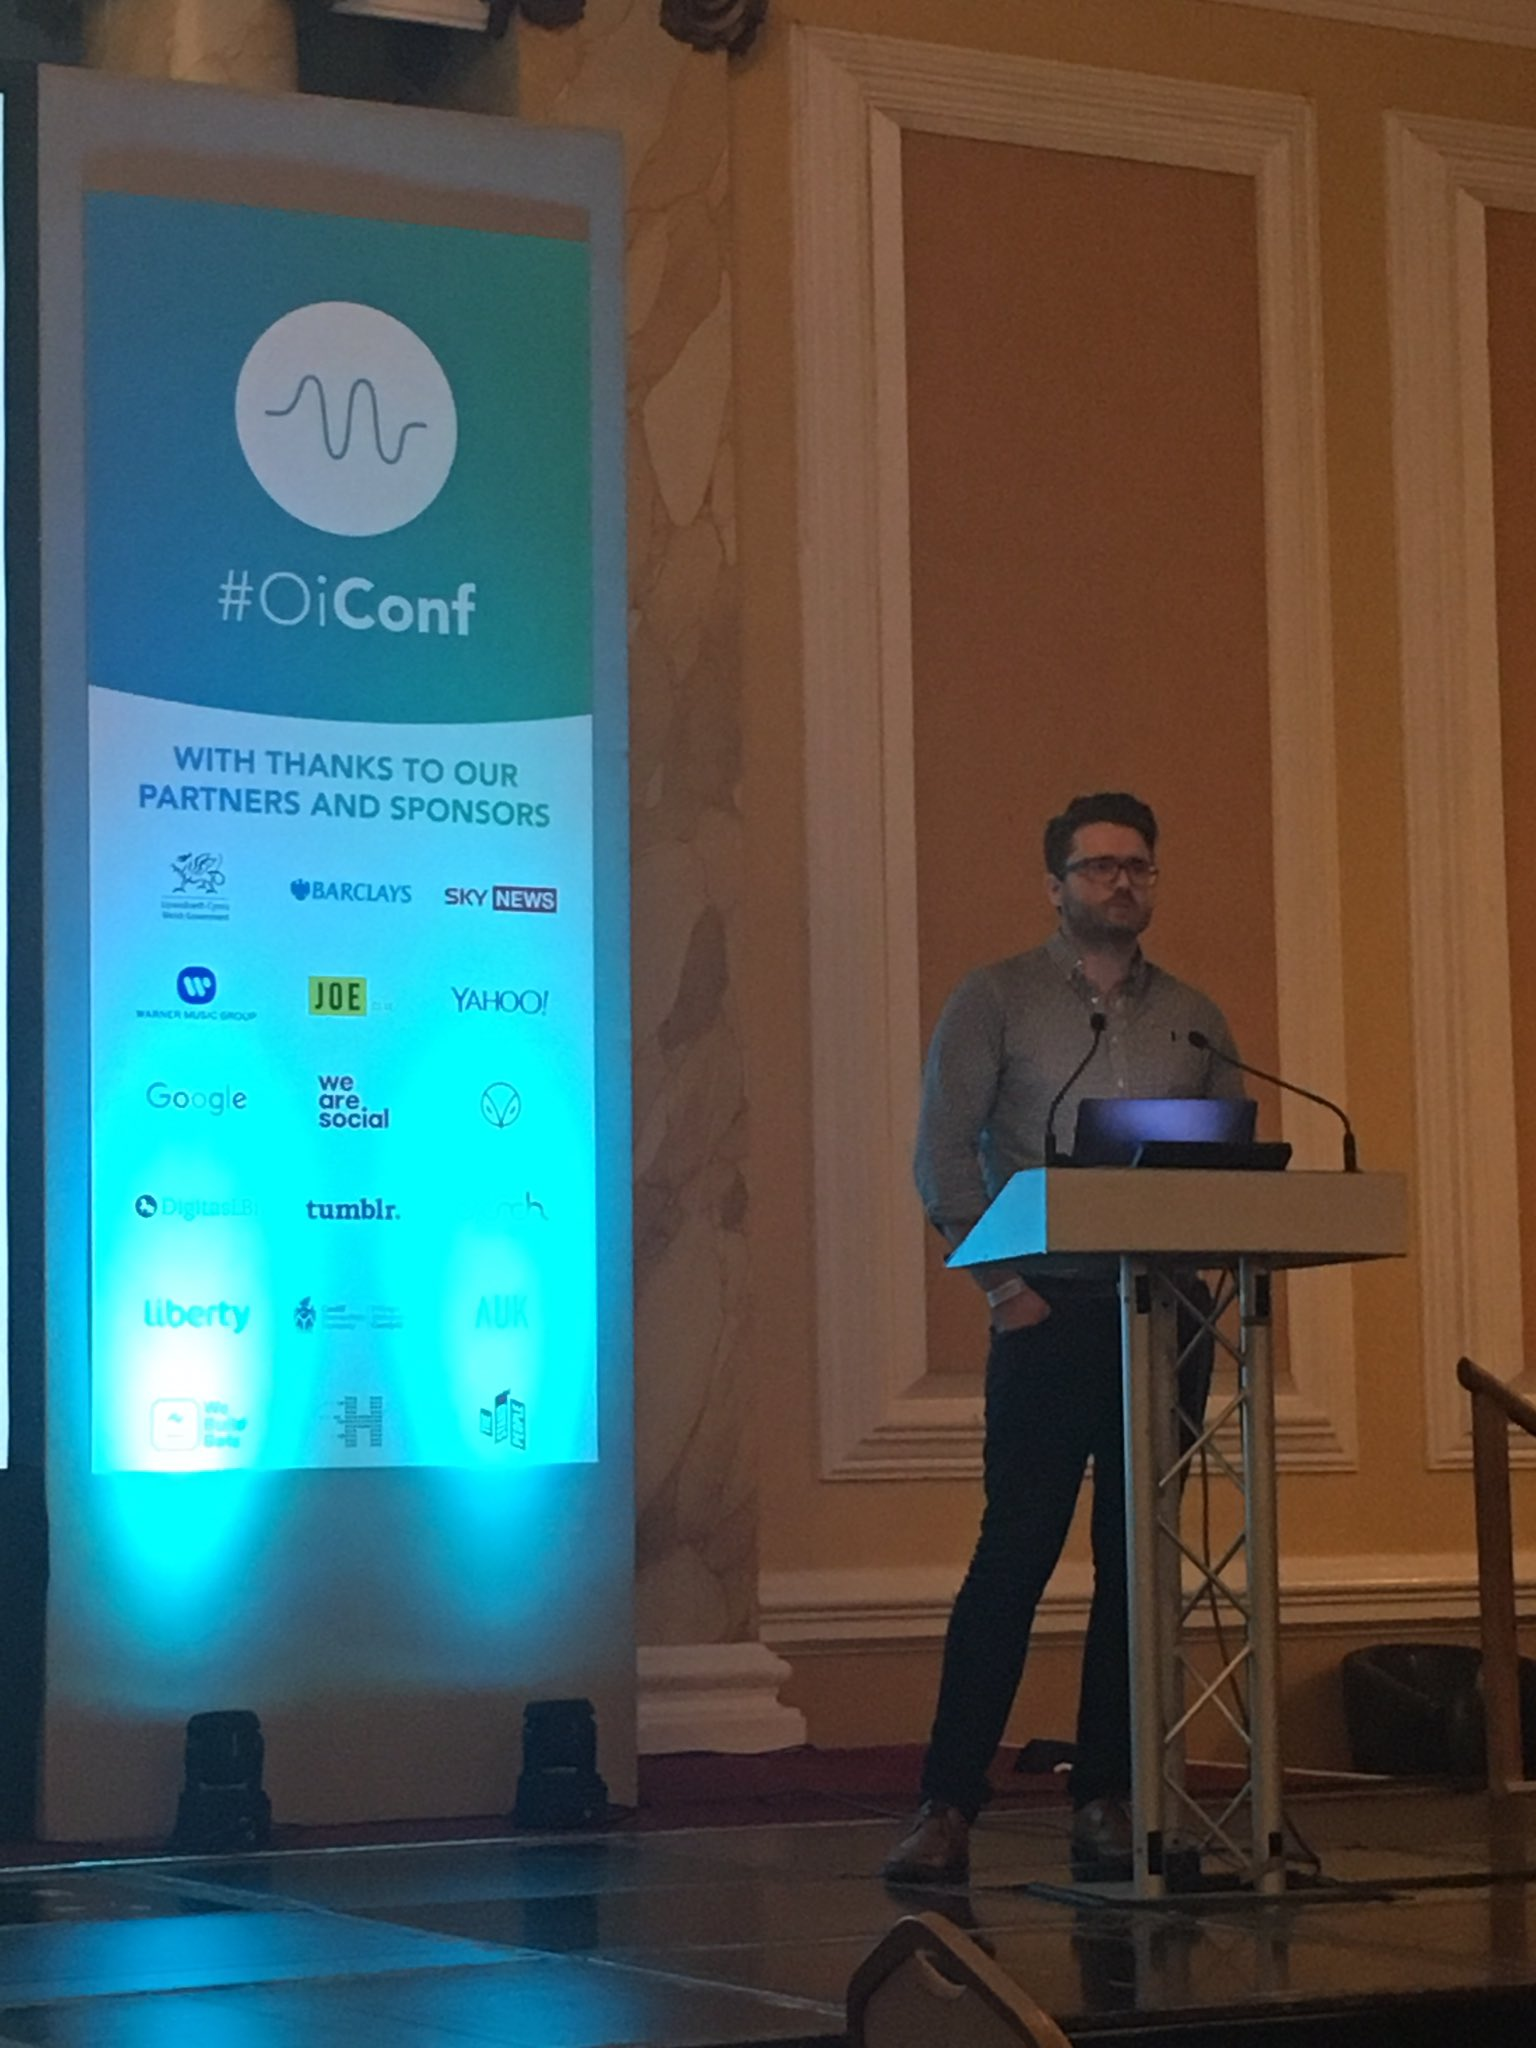 Gareth Morgan talks about advanced audience targeting to attract and retain your target market  #OiConf #audiencetargeting #marketing https://t.co/qwP31hcwnK